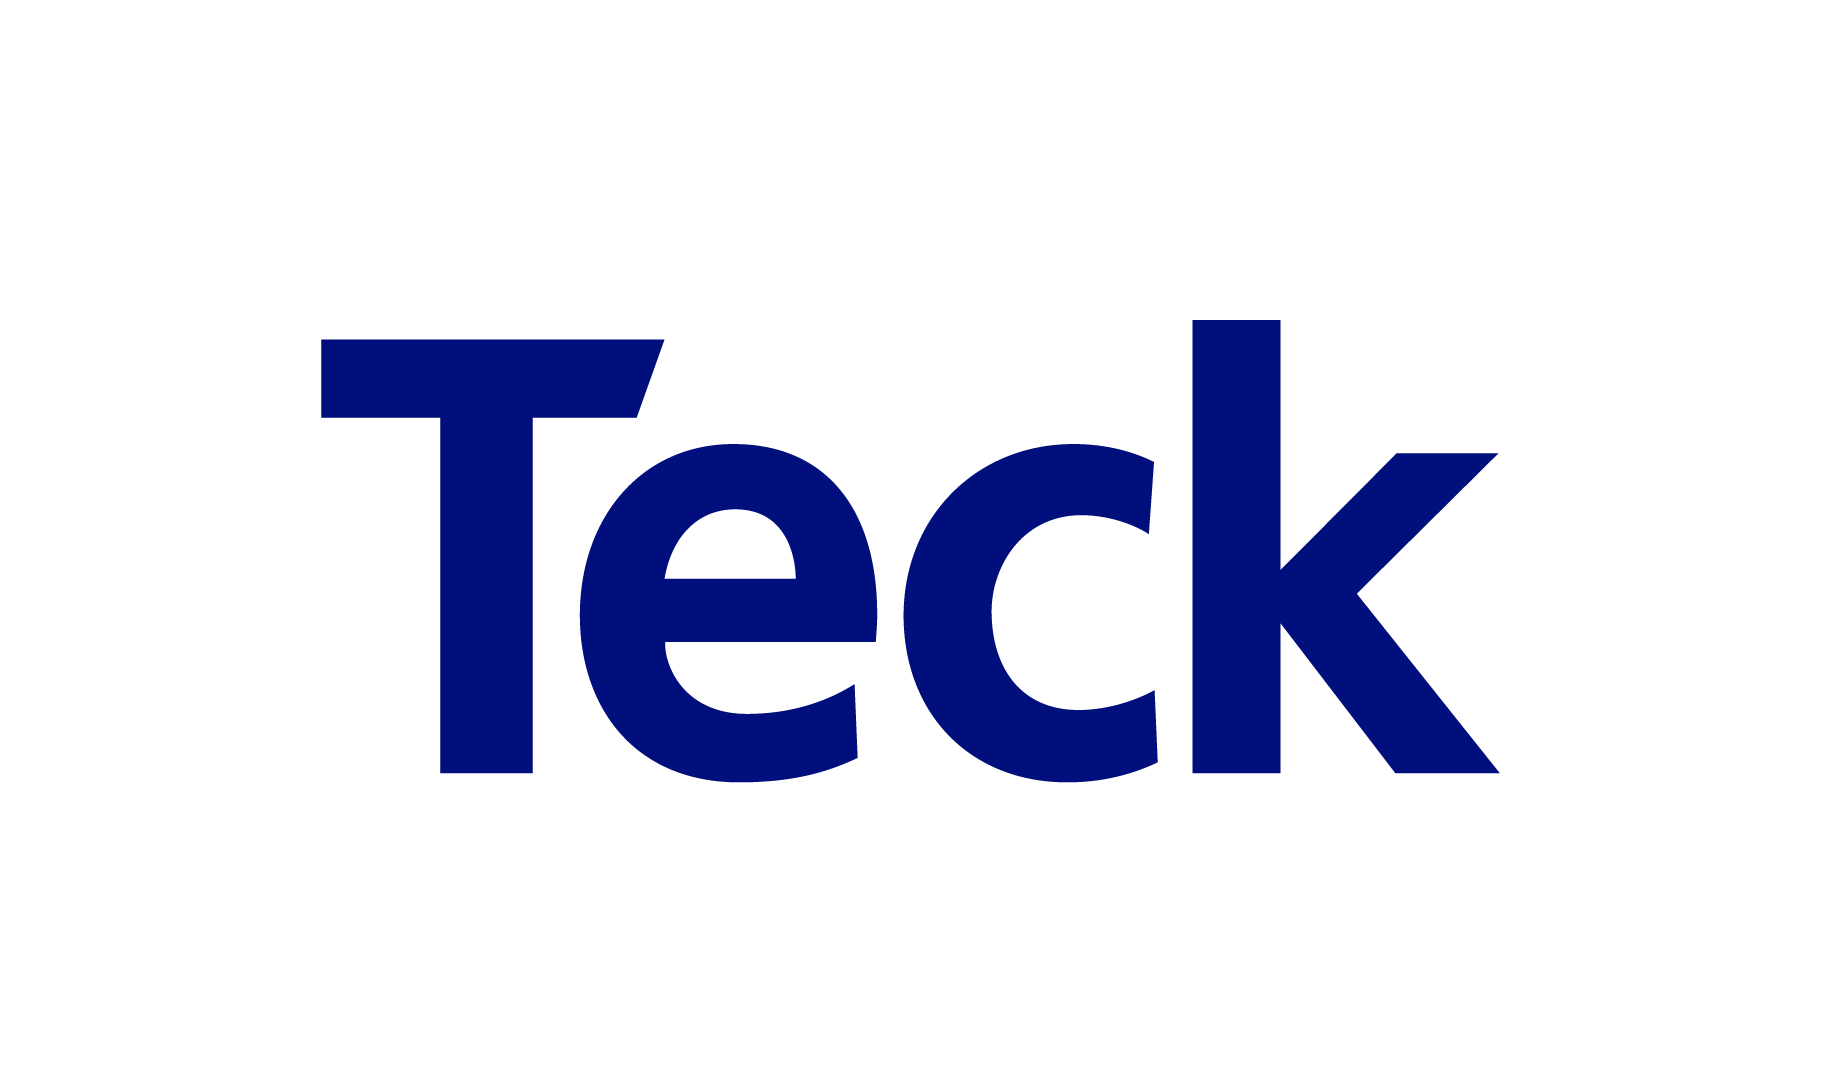 Teck Announces COVID-19 Precautionary Measures for its Annual Meeting of Shareholders, Investor and Analyst Day and Modelling Workshop